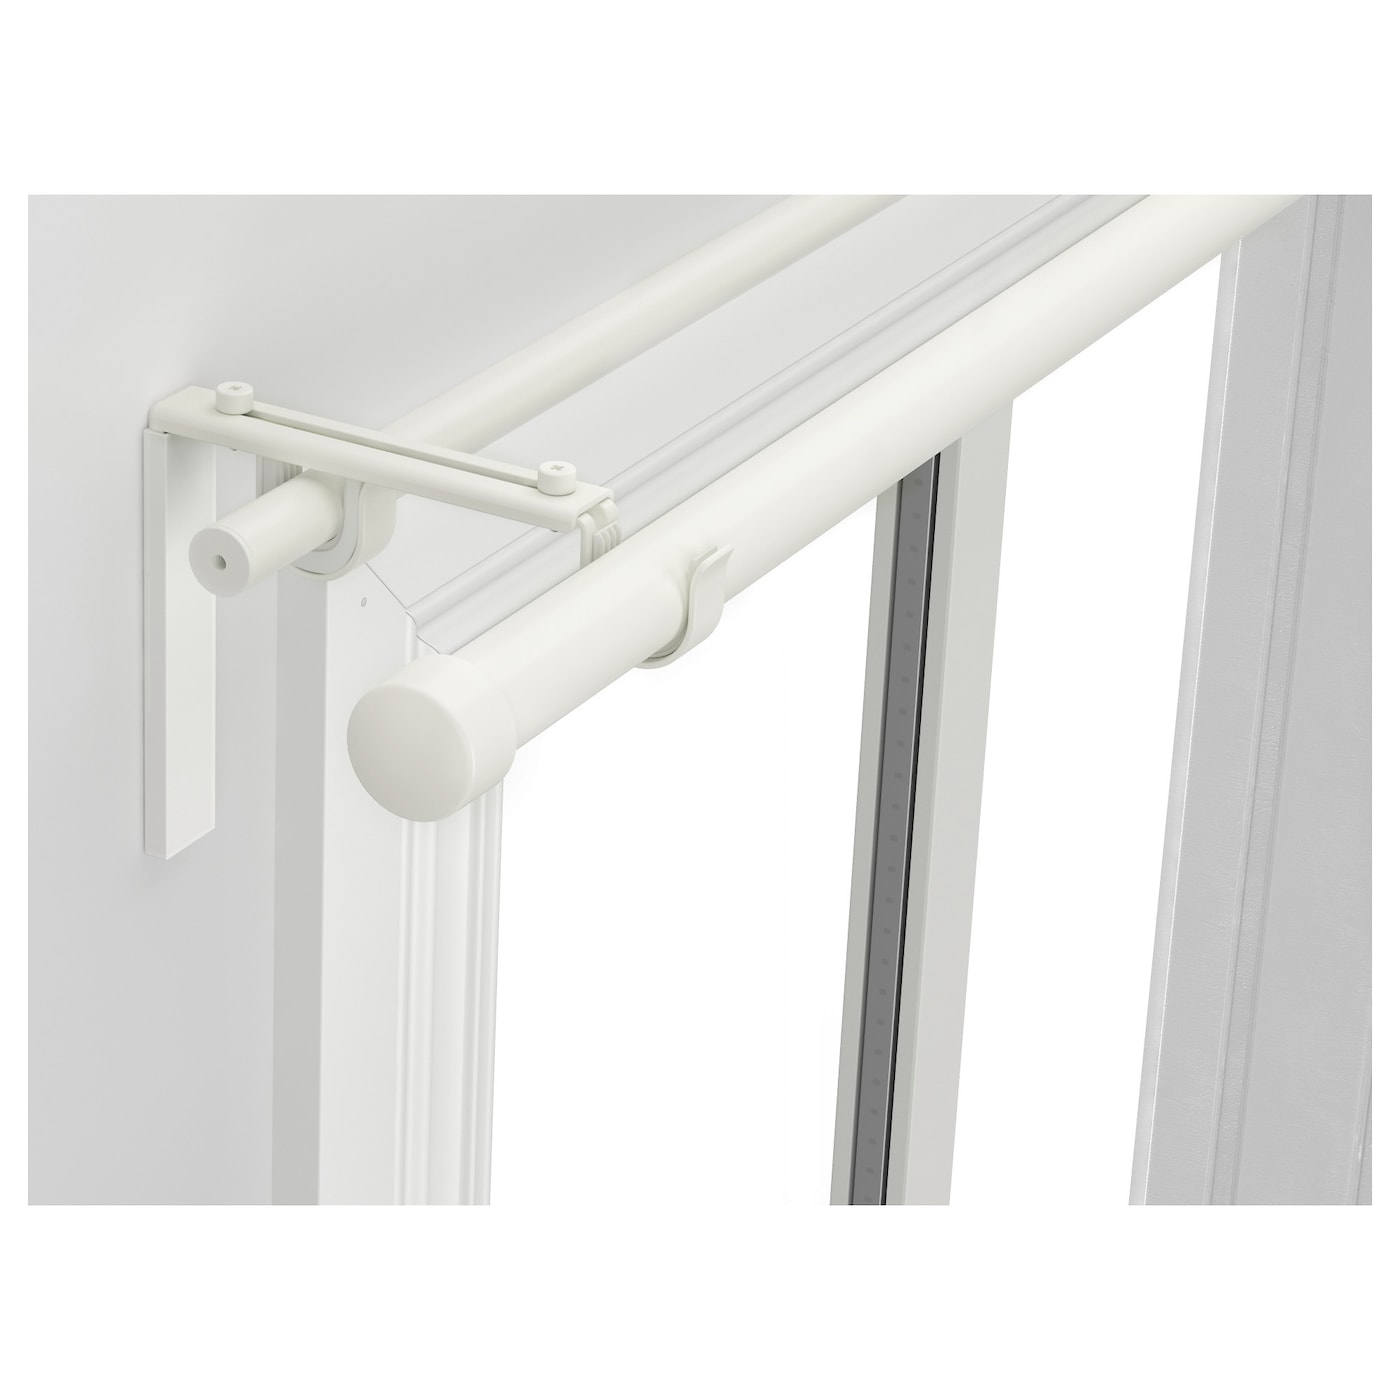 double curtains products curtain or rod white urbanest bracket for